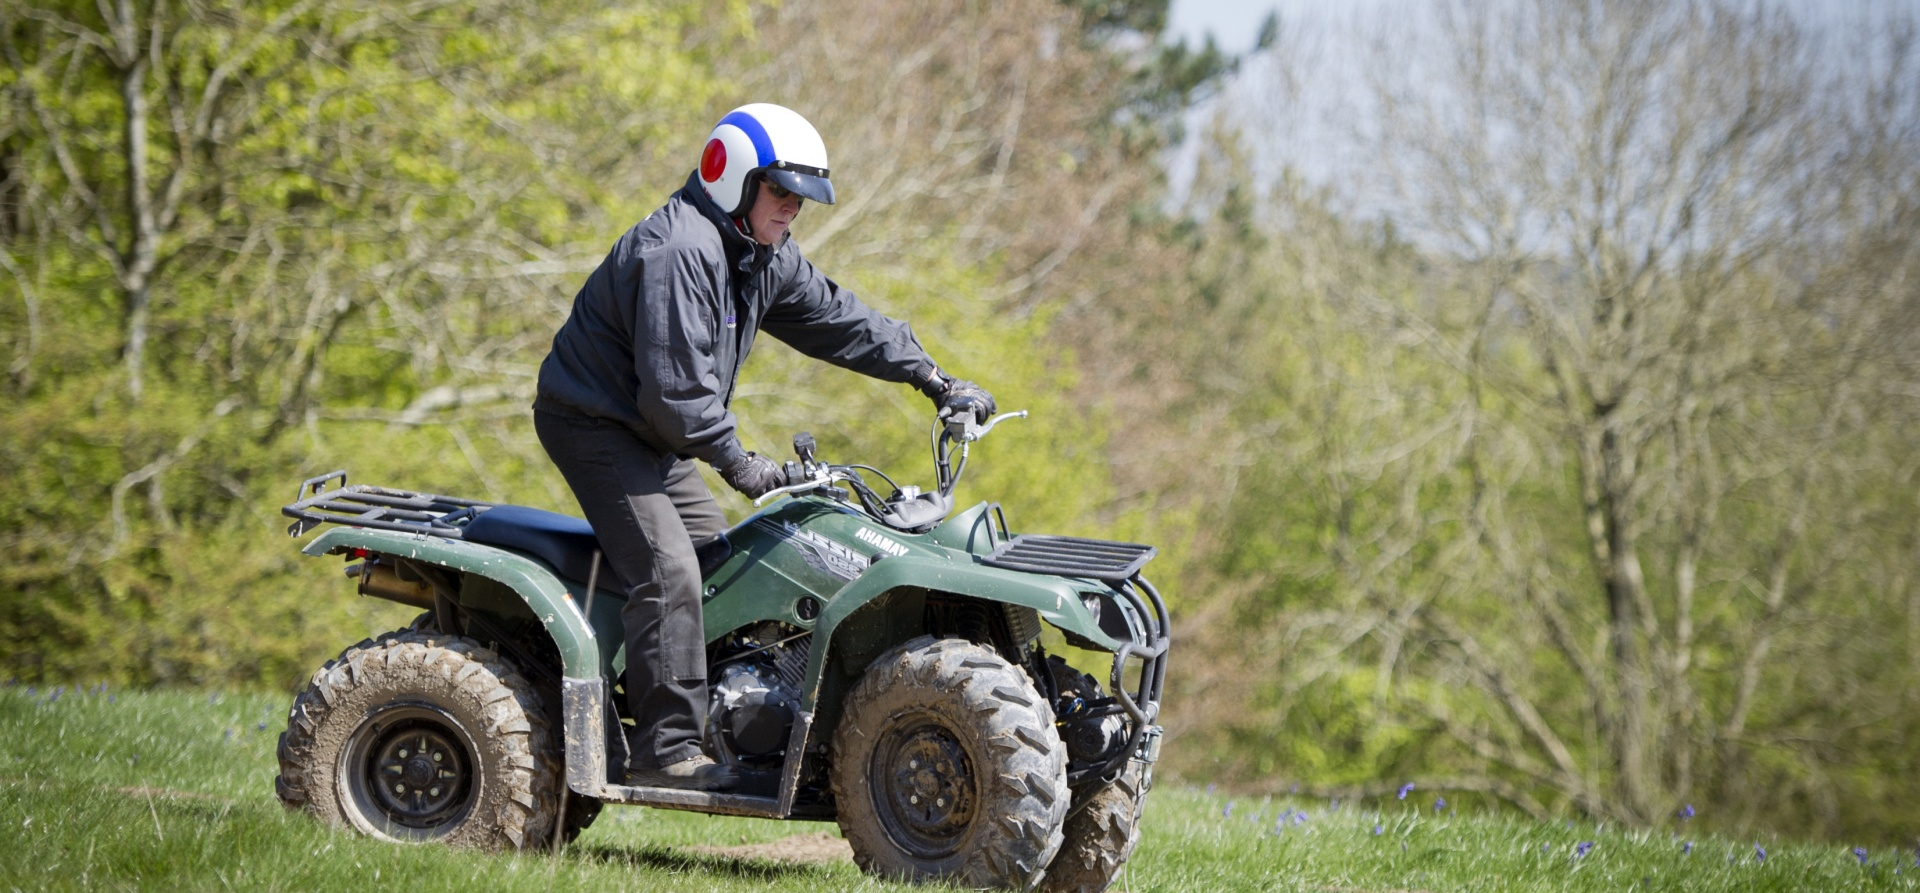 Quad Bike Introduction Thrill - Kent-2